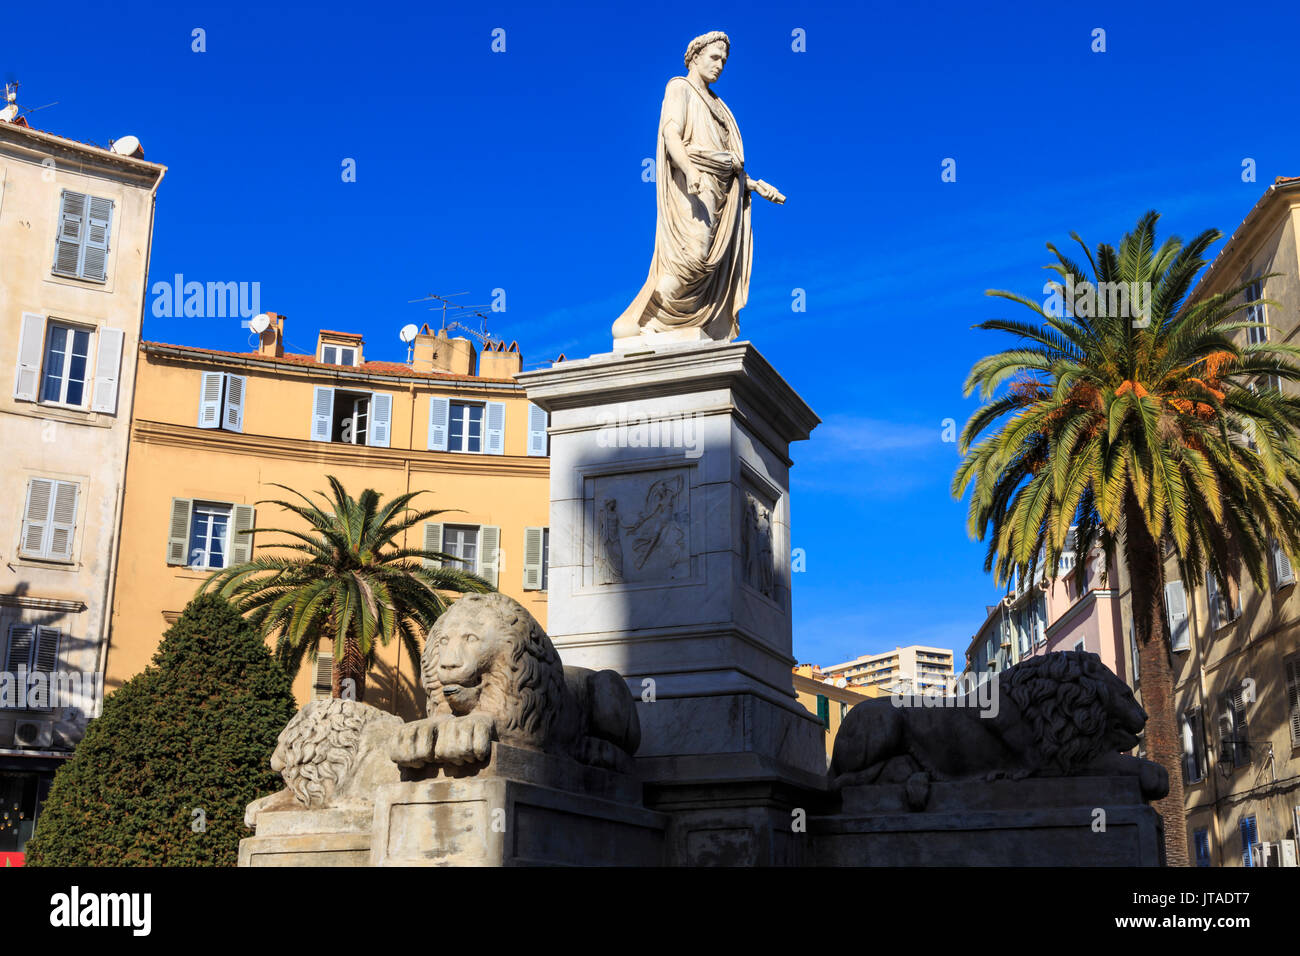 Statue of Napoleon as Roman Emperor, with lions and palm trees, pastel buildings, Place Foch, Ajaccio, Island of Corsica, France - Stock Image